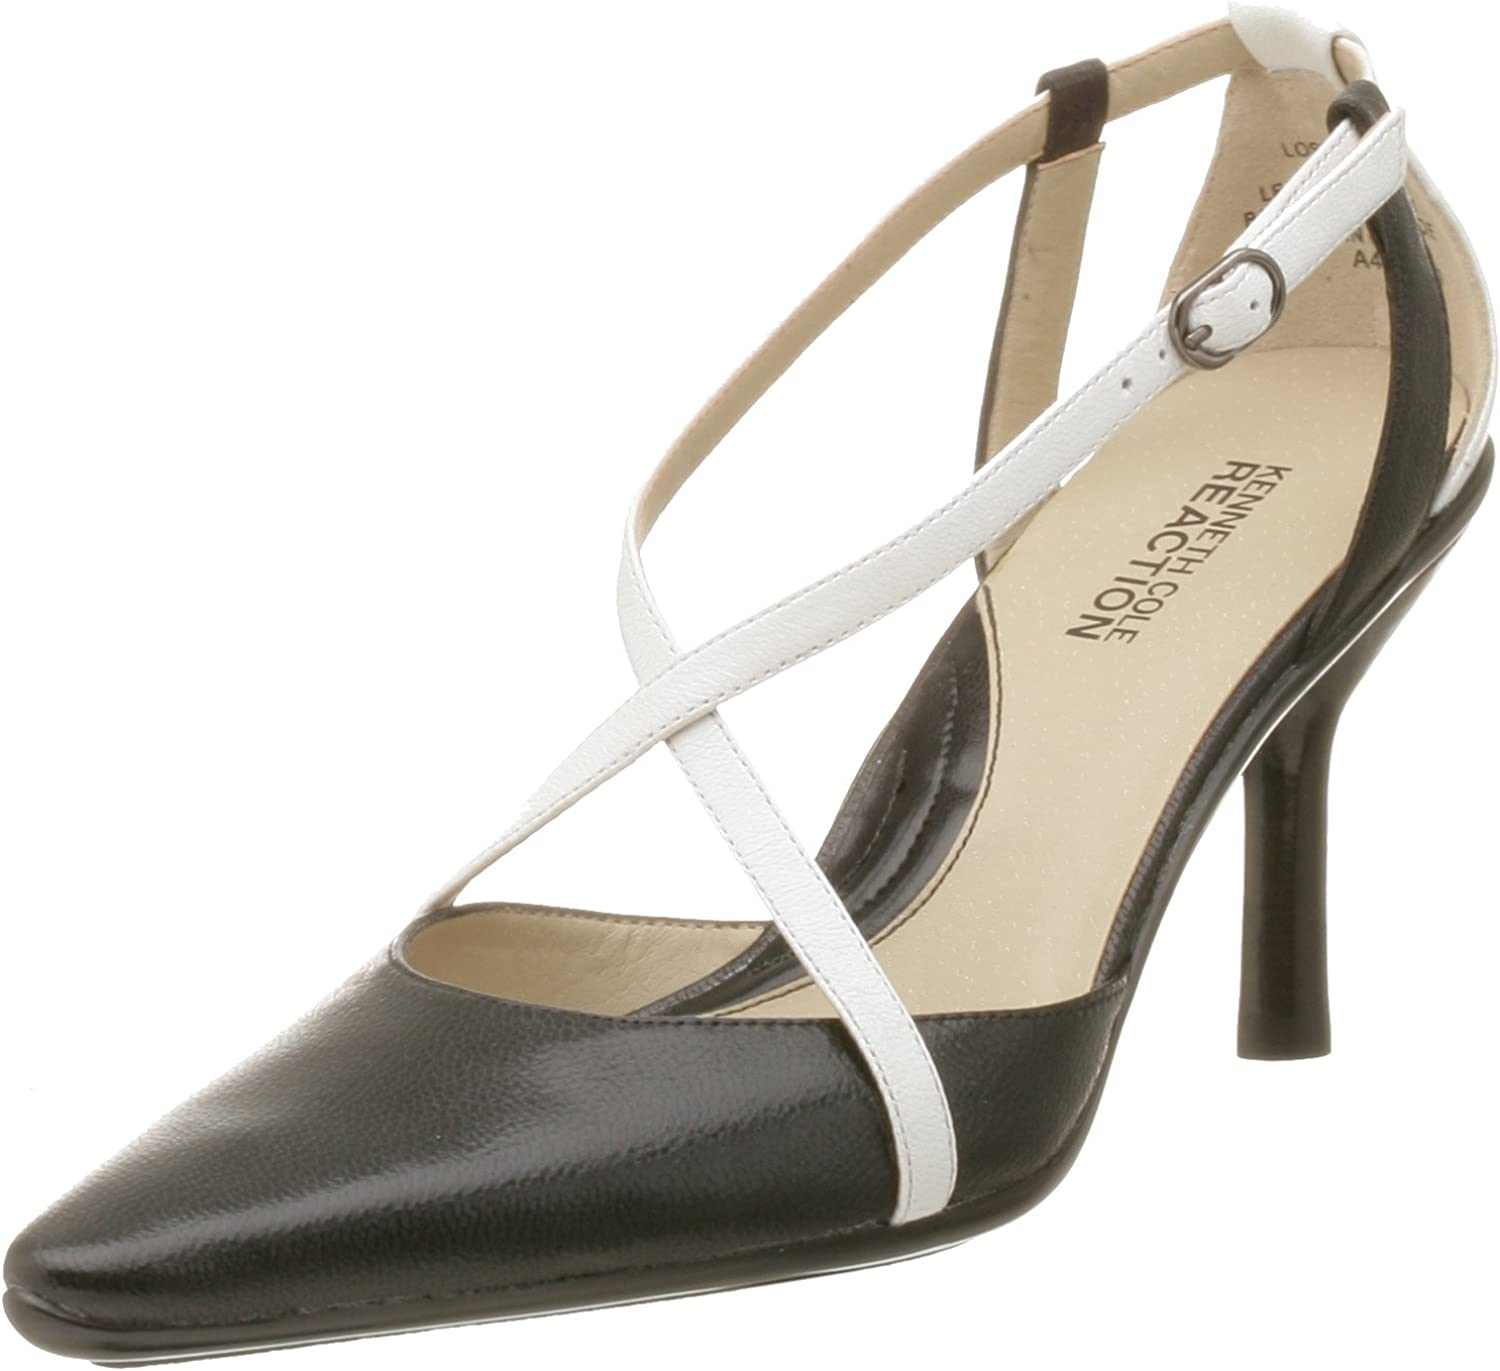 Kenneth 25% OFF Cole REACTION Women's Lost Cos High Max 47% OFF Pum Pointed Toe Heel